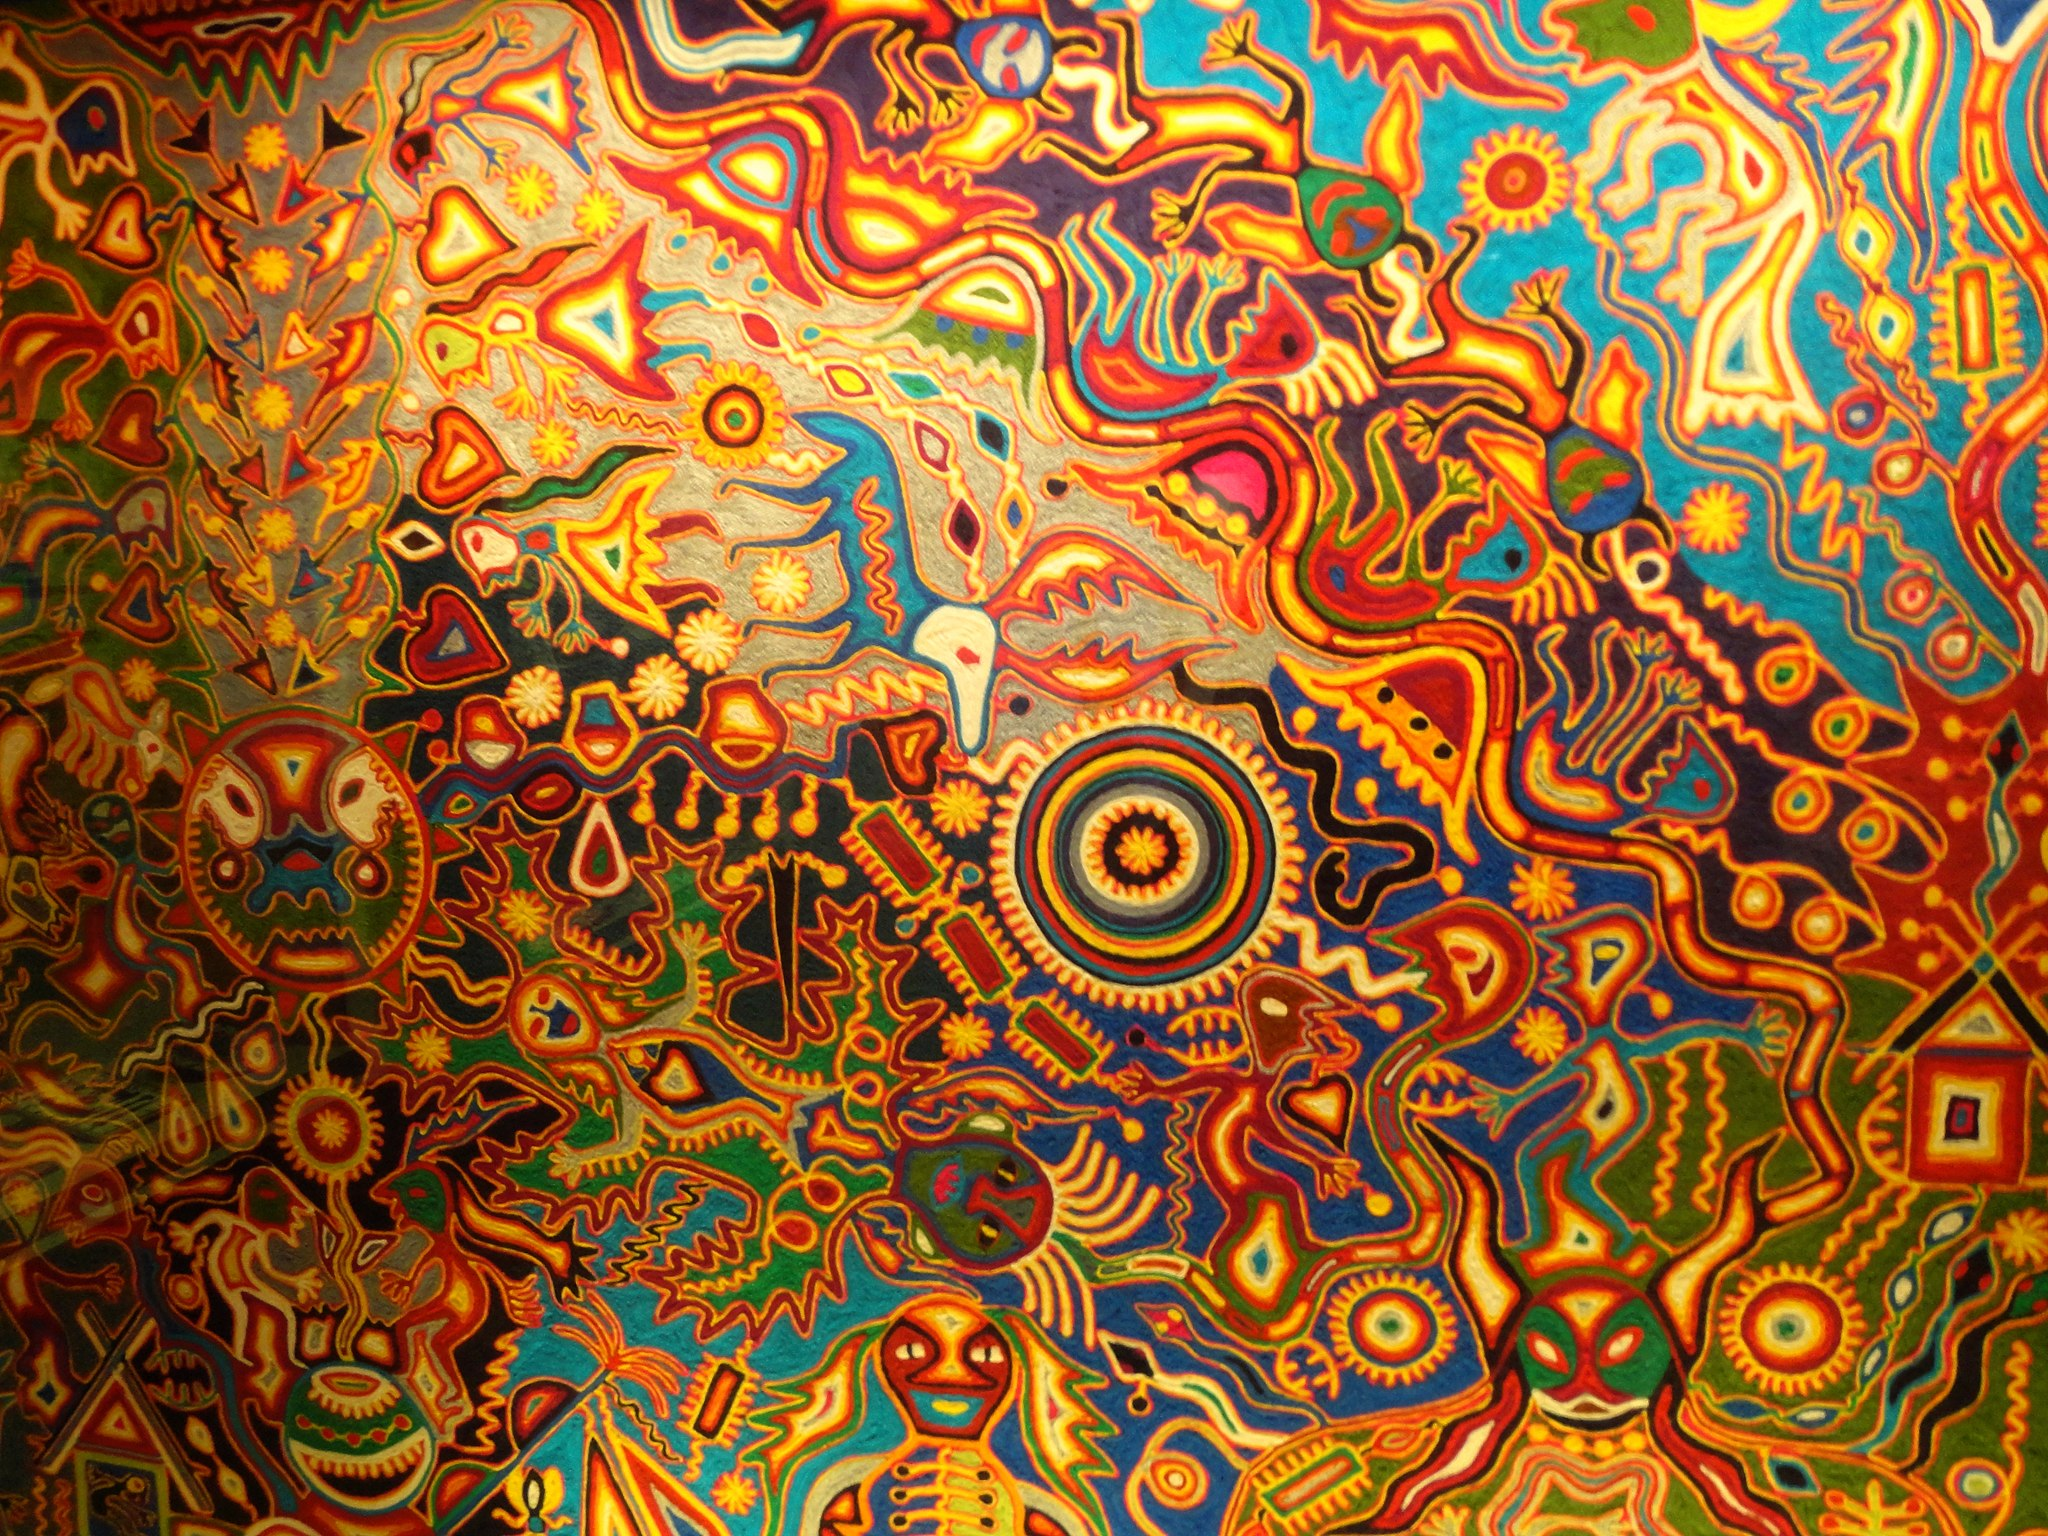 Arte Huichol Mexico An Introduction To Indigenous Huichol Art In 15 Stunning Artworks